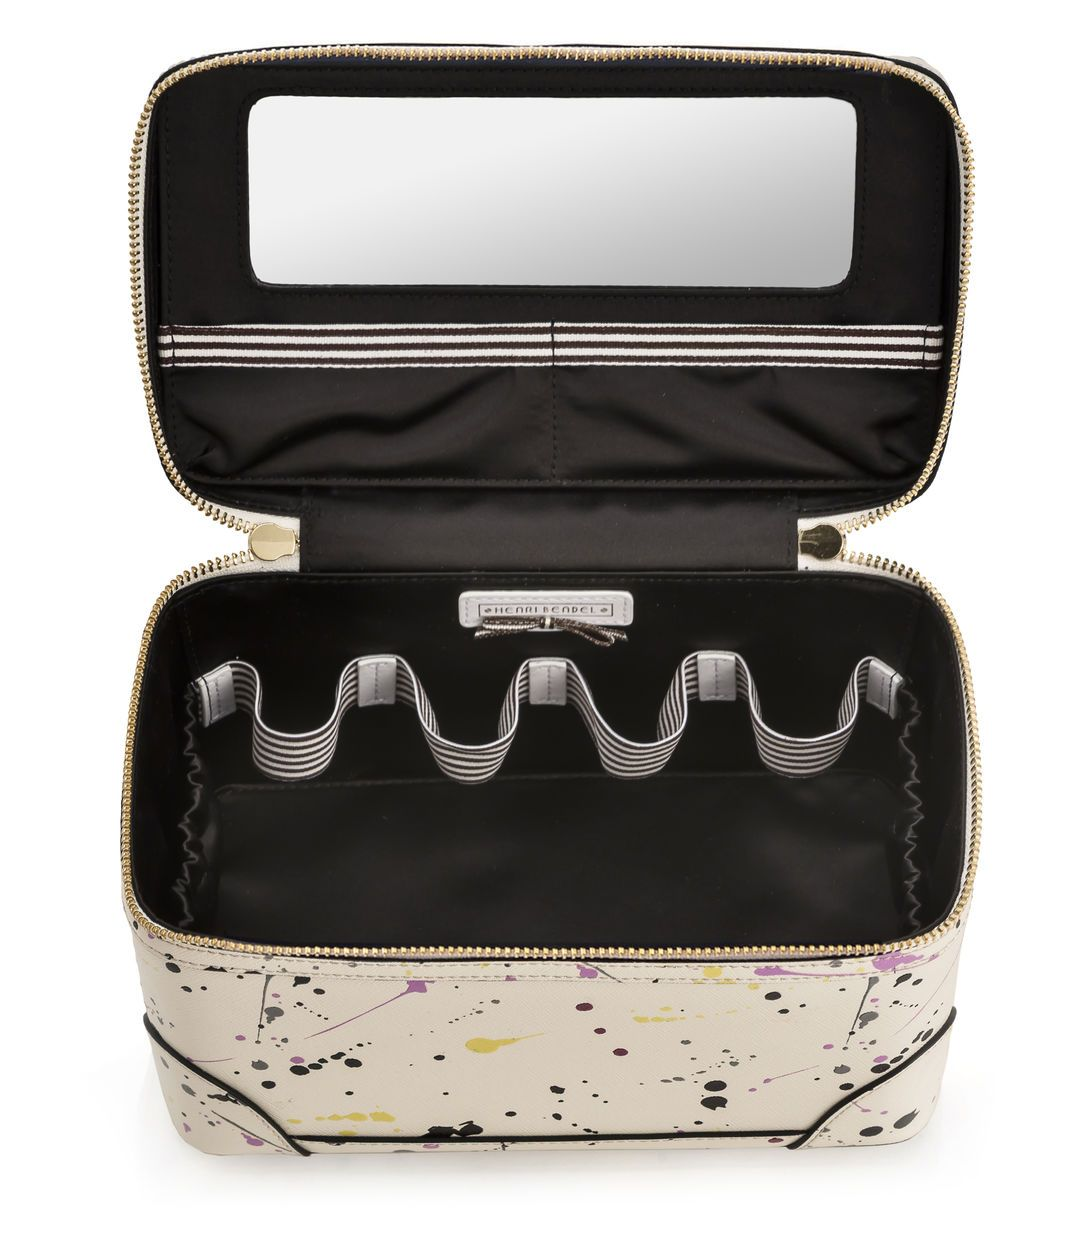 8bc3f3b15868 p>The West 57th Splatter Train Case is a classic travel accessory ...